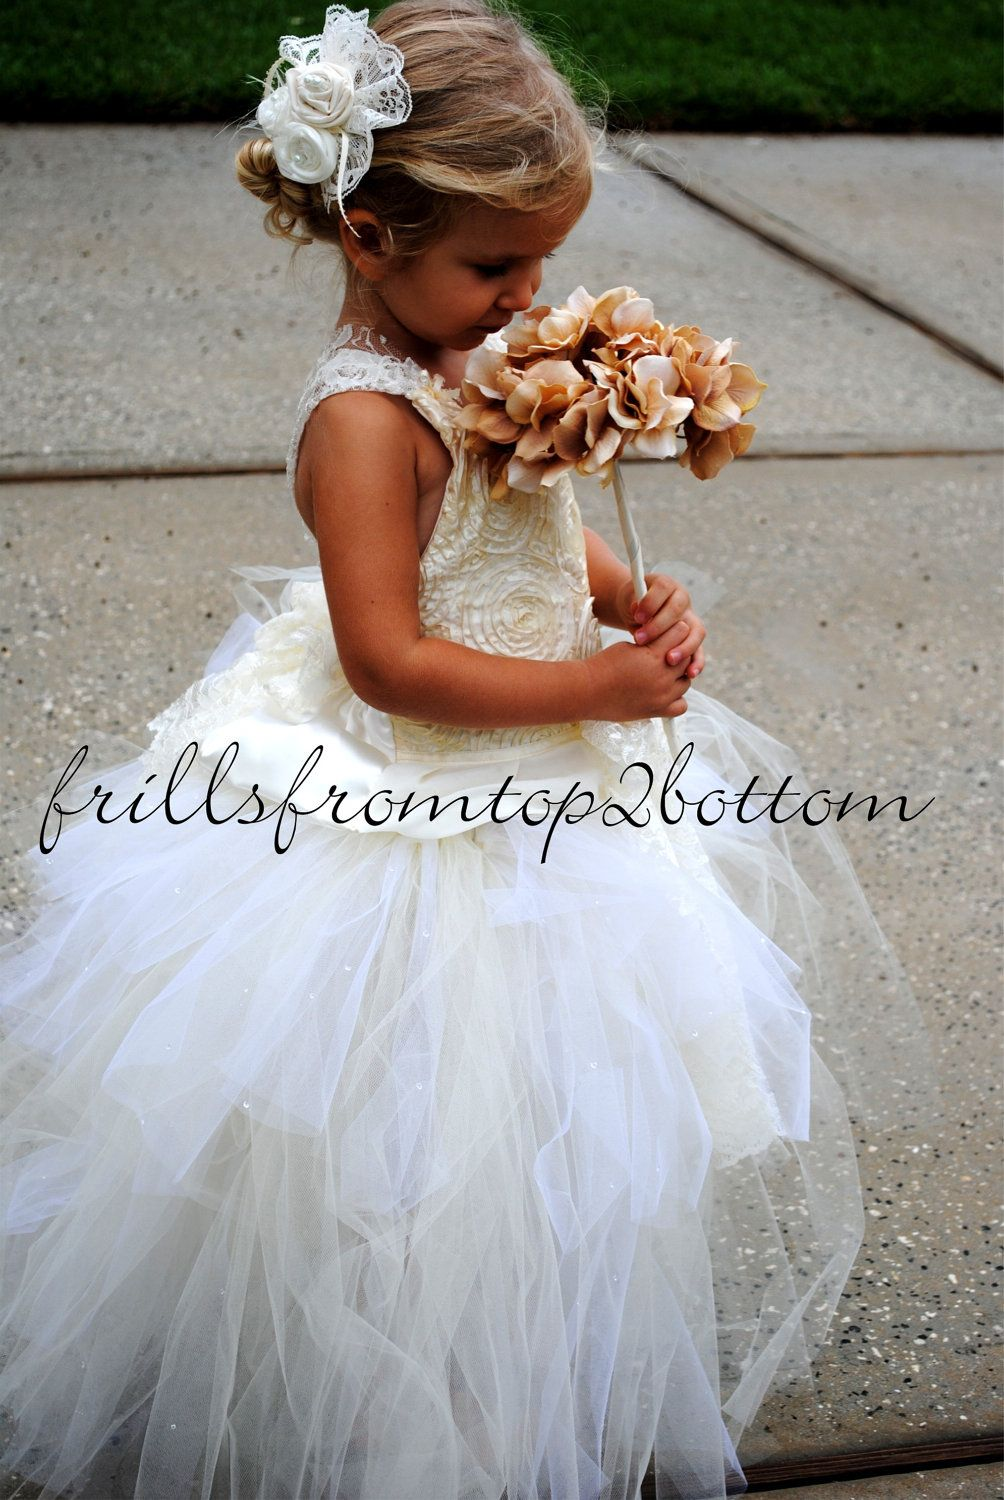 Ivory Flowergirl Dress . Tutu Skirt . Halter Top w/ Lace straps ...